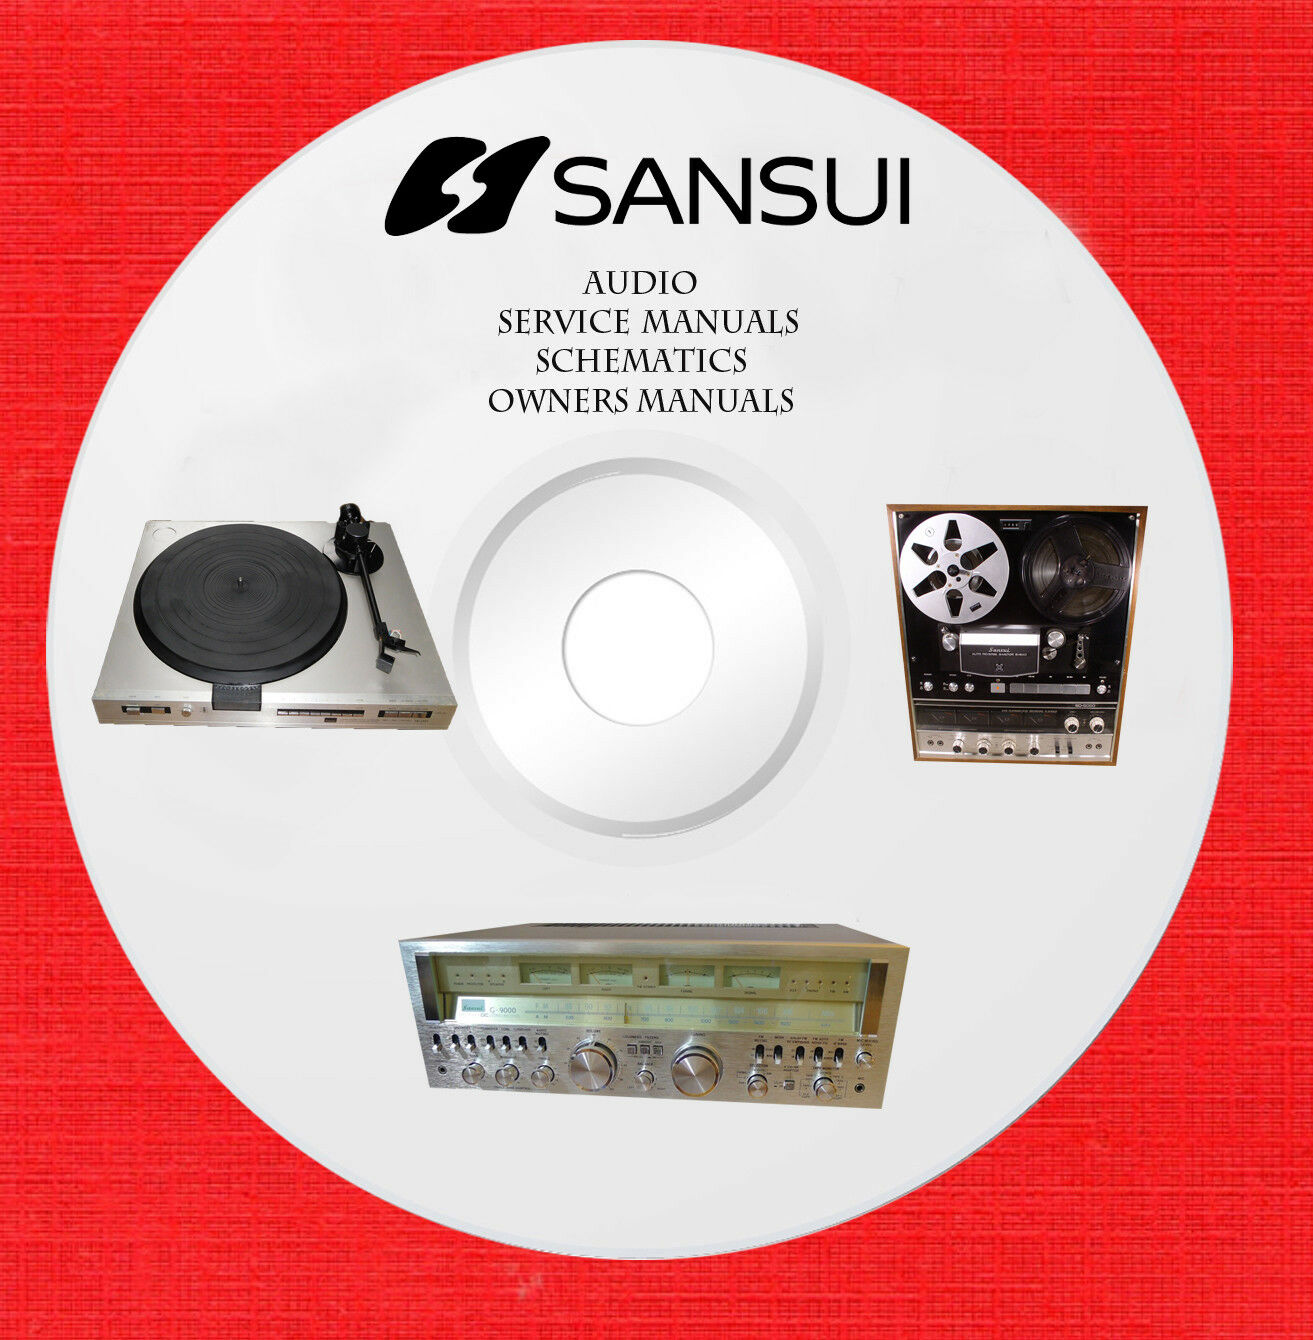 sansui audio repair service owner manuals on 2 dvd in pdf format rh picclick com